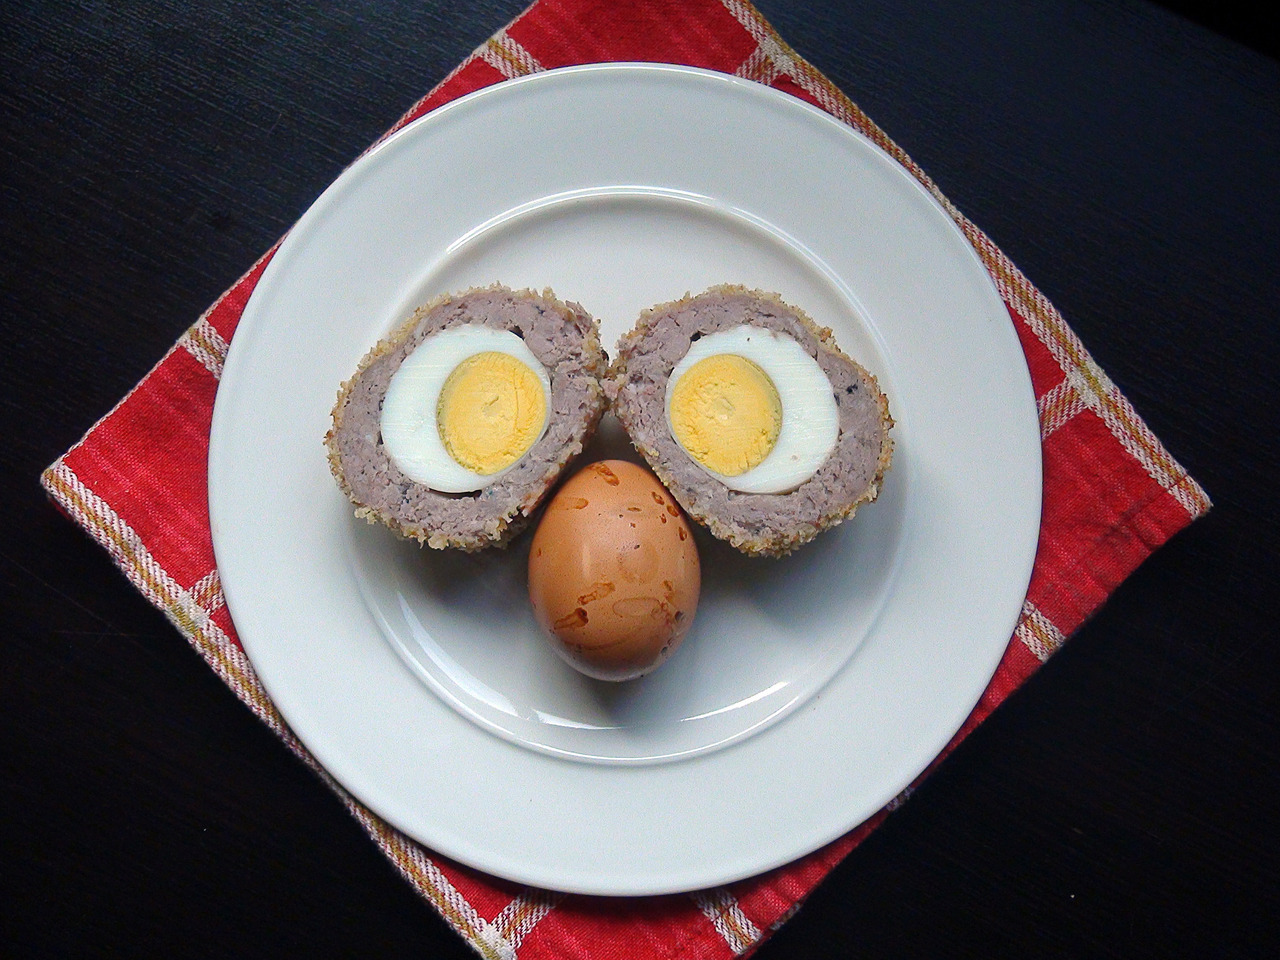 Combining 2 great recipes for 1 fantastic lunch: A Smoked Scotch Egg. Recipes at OutlanderKitchen.com…http://wp.me/p1WpG2-4u & http://wp.me/p1WpG2-Sf